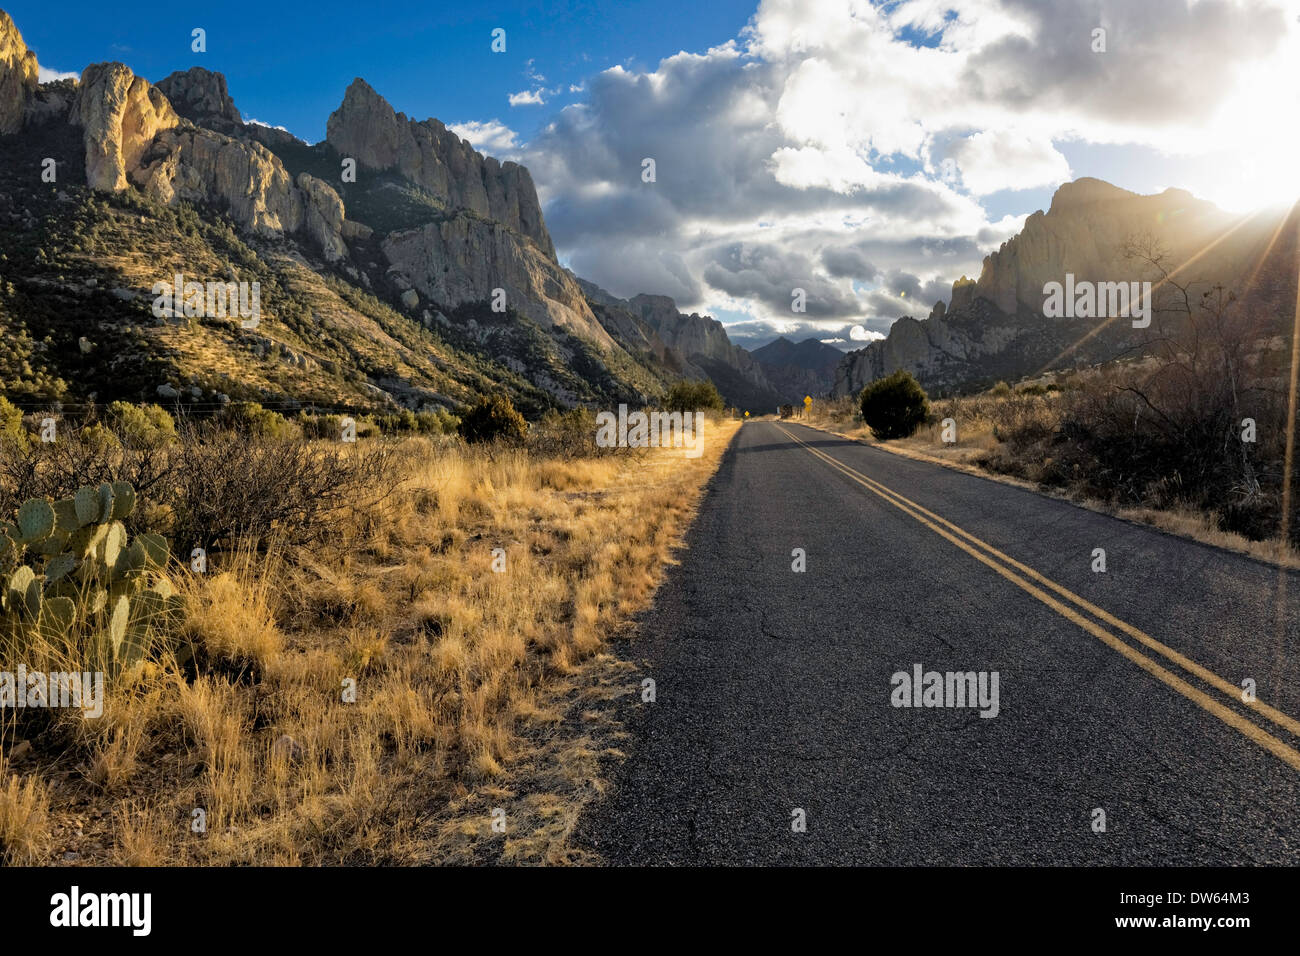 Scenic Arizona Back Roads - Stock Image